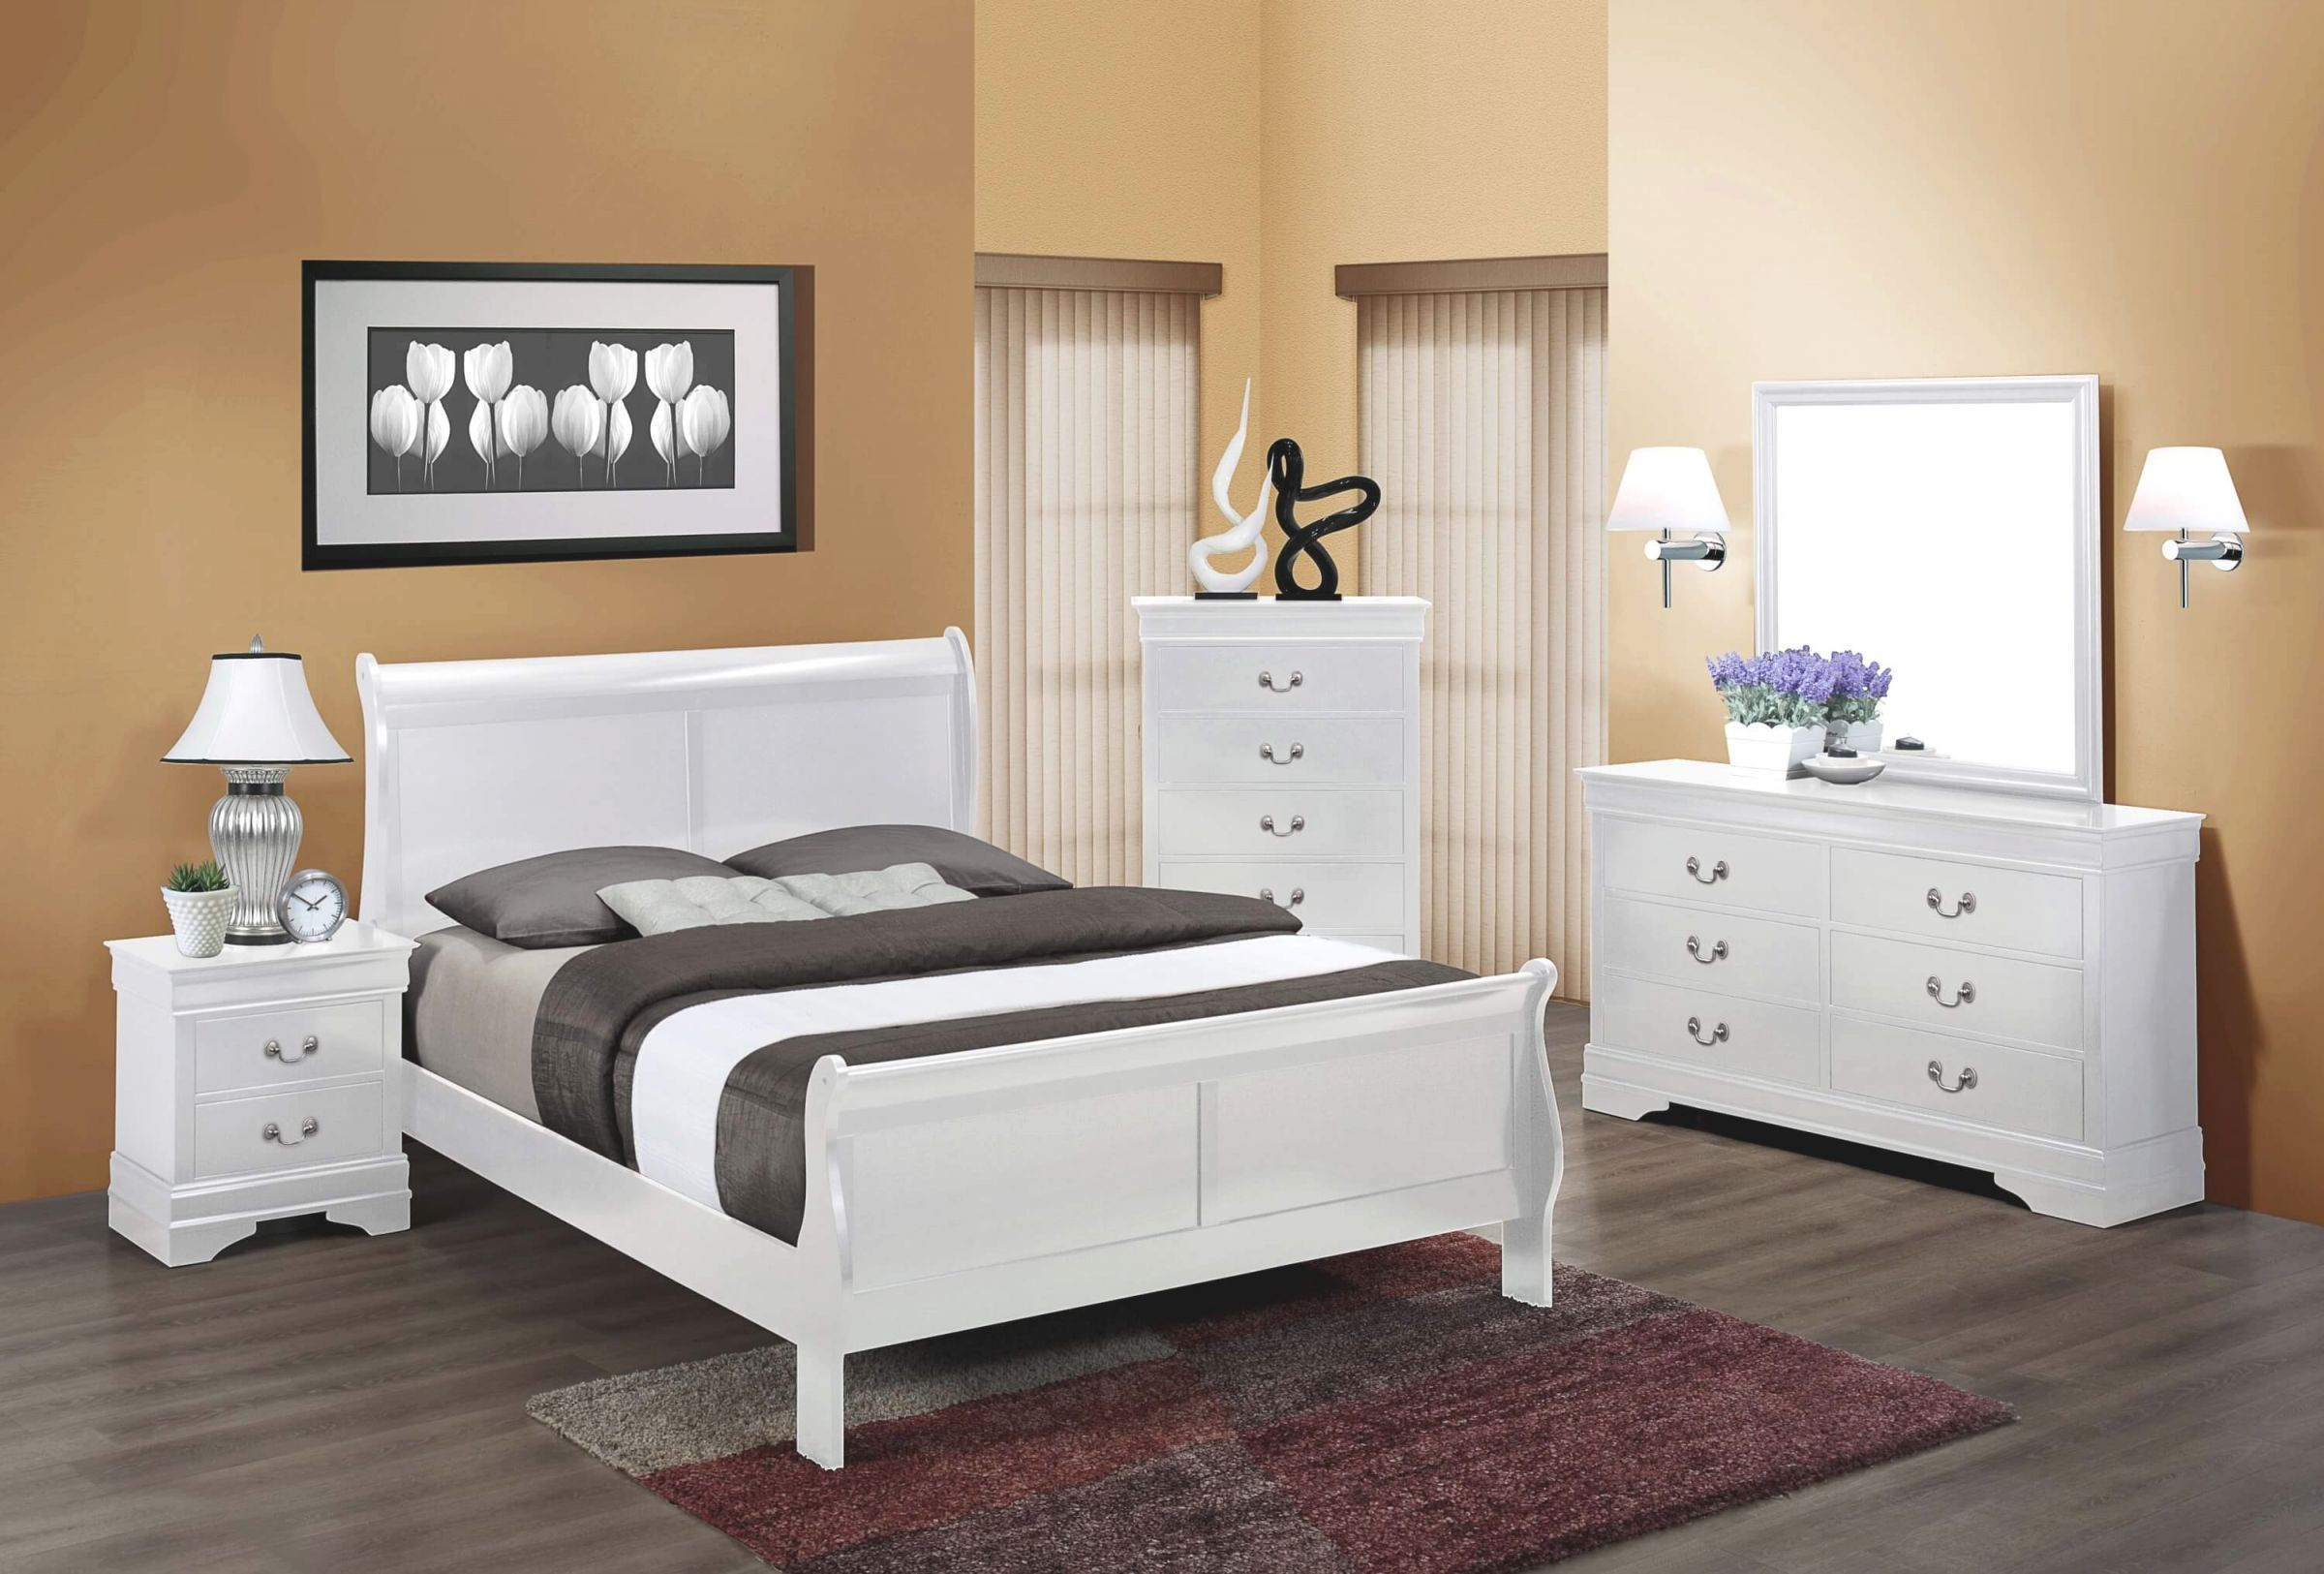 B3600 White Louis Philip Bedroom Setcrown Mark within Full Size Bedroom Furniture Sets